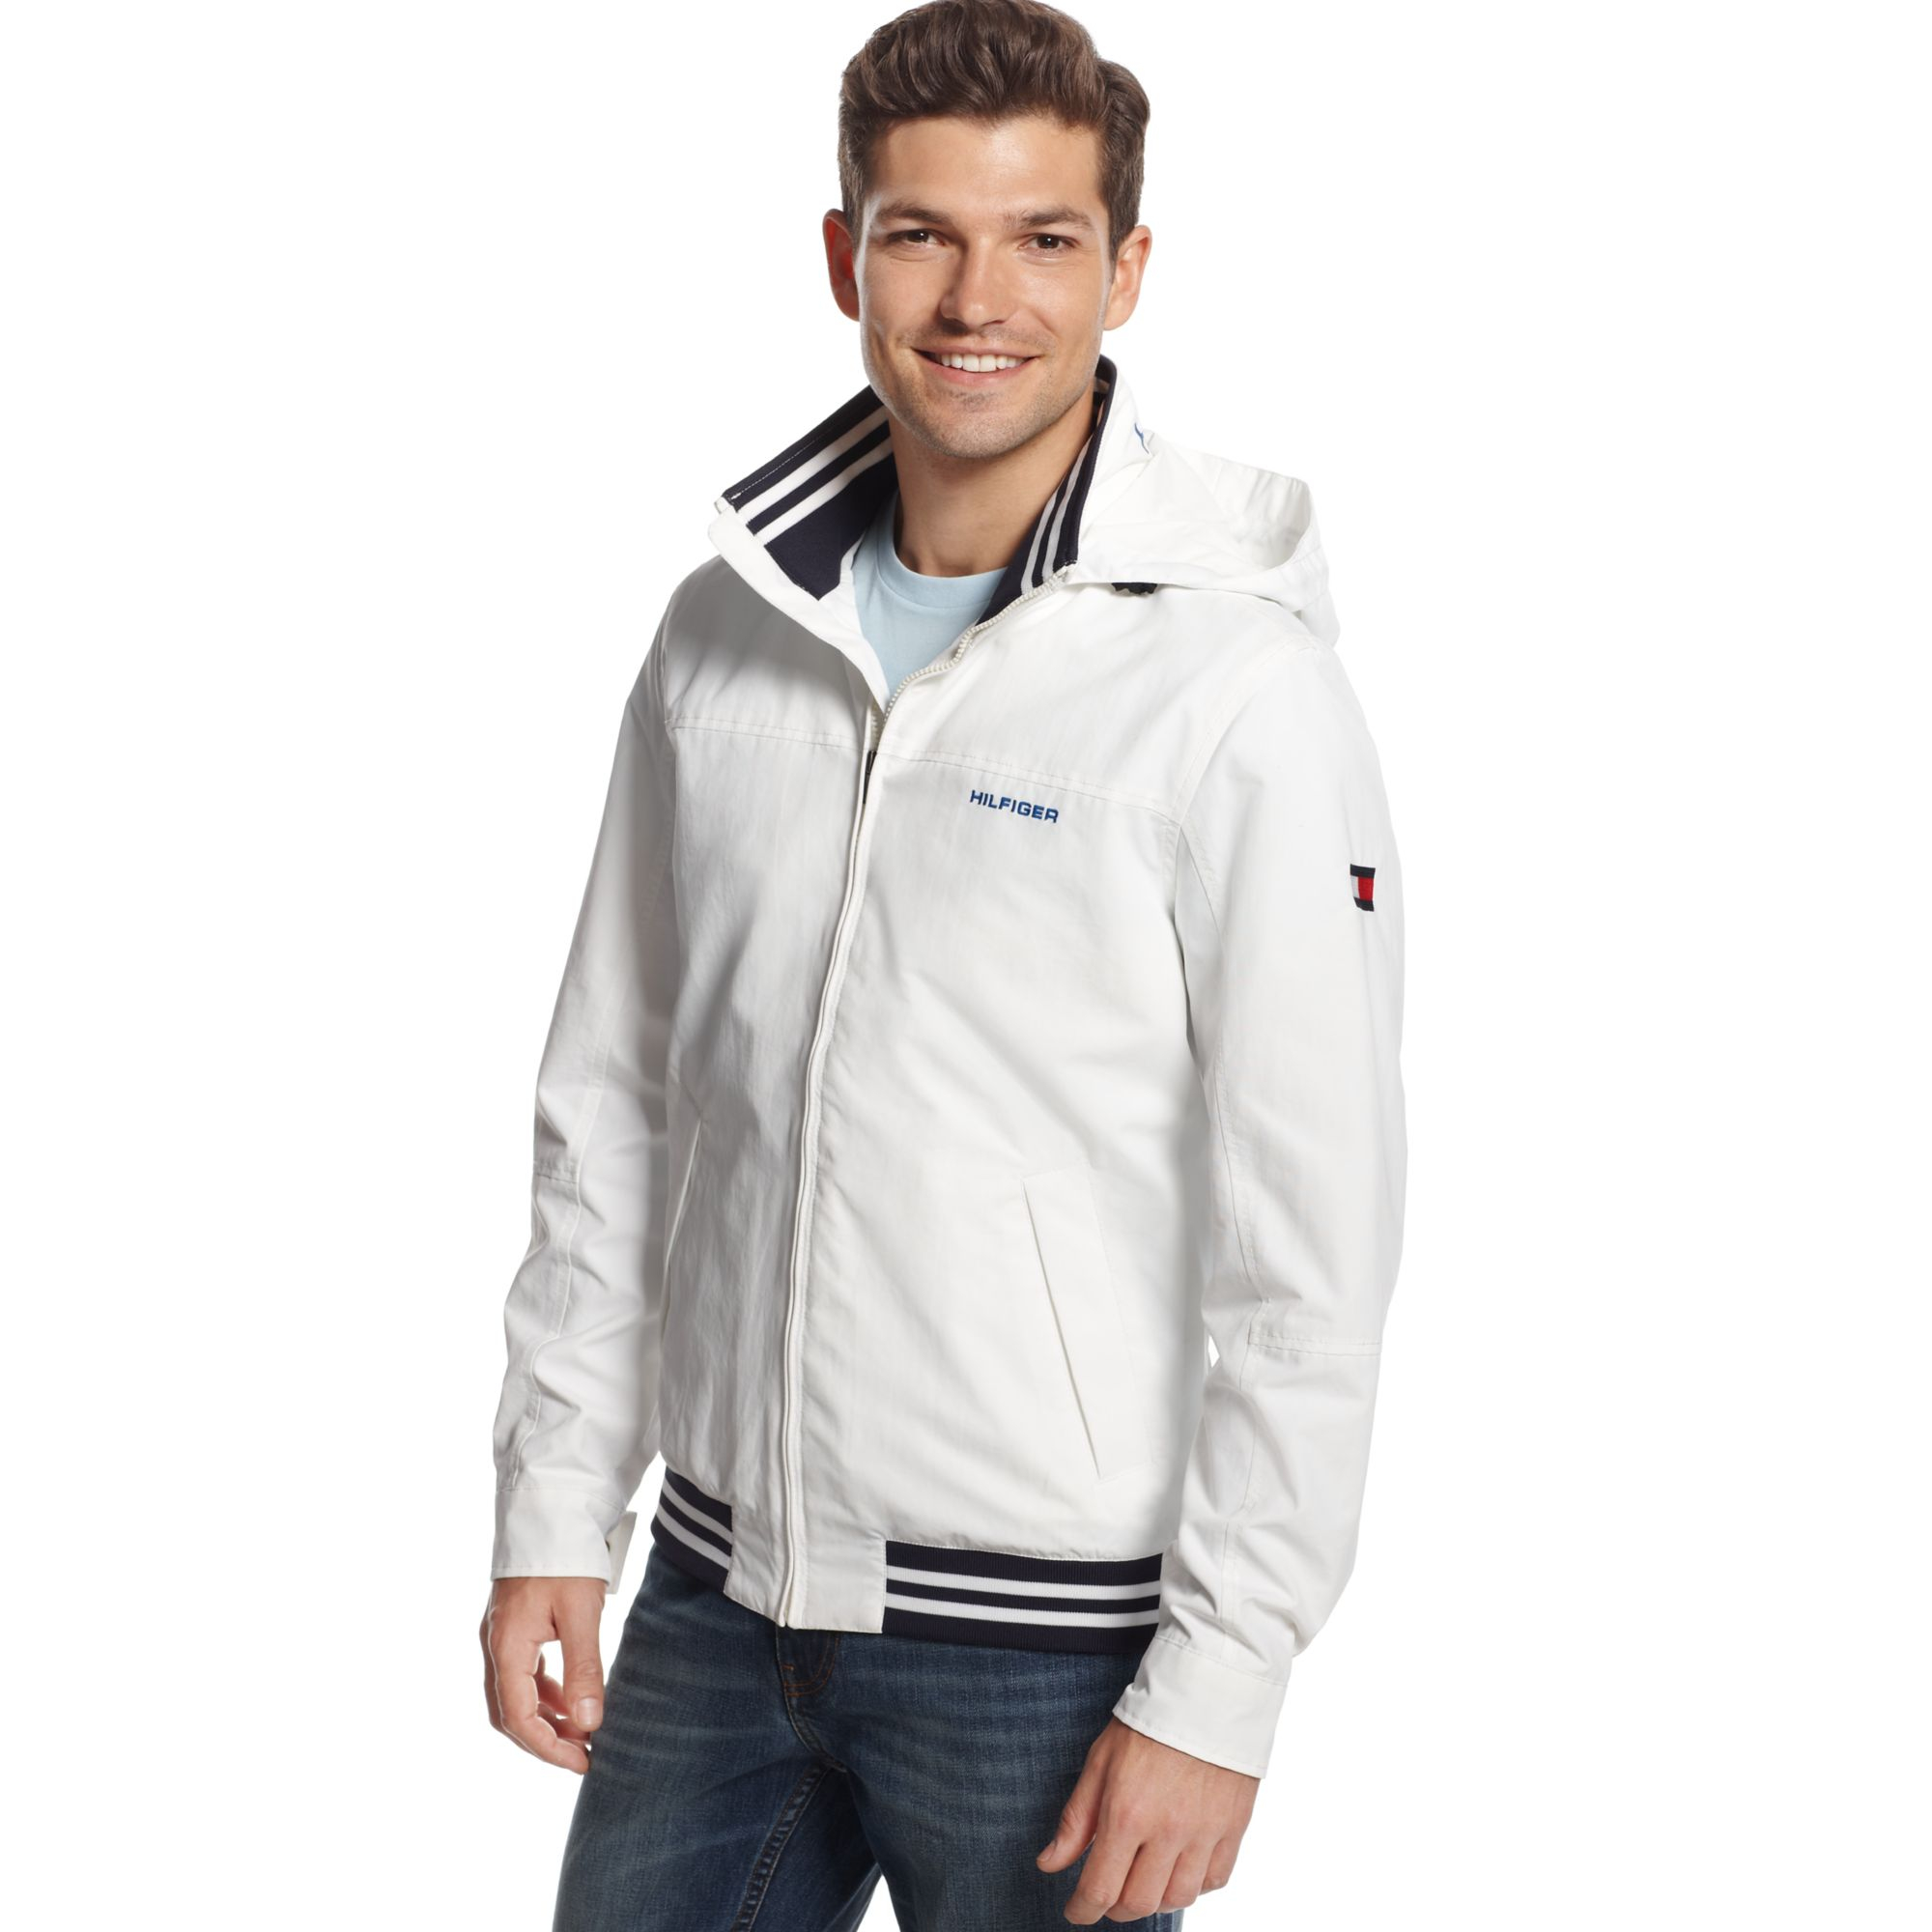 tommy hilfiger regatta jacket in white for men classic. Black Bedroom Furniture Sets. Home Design Ideas